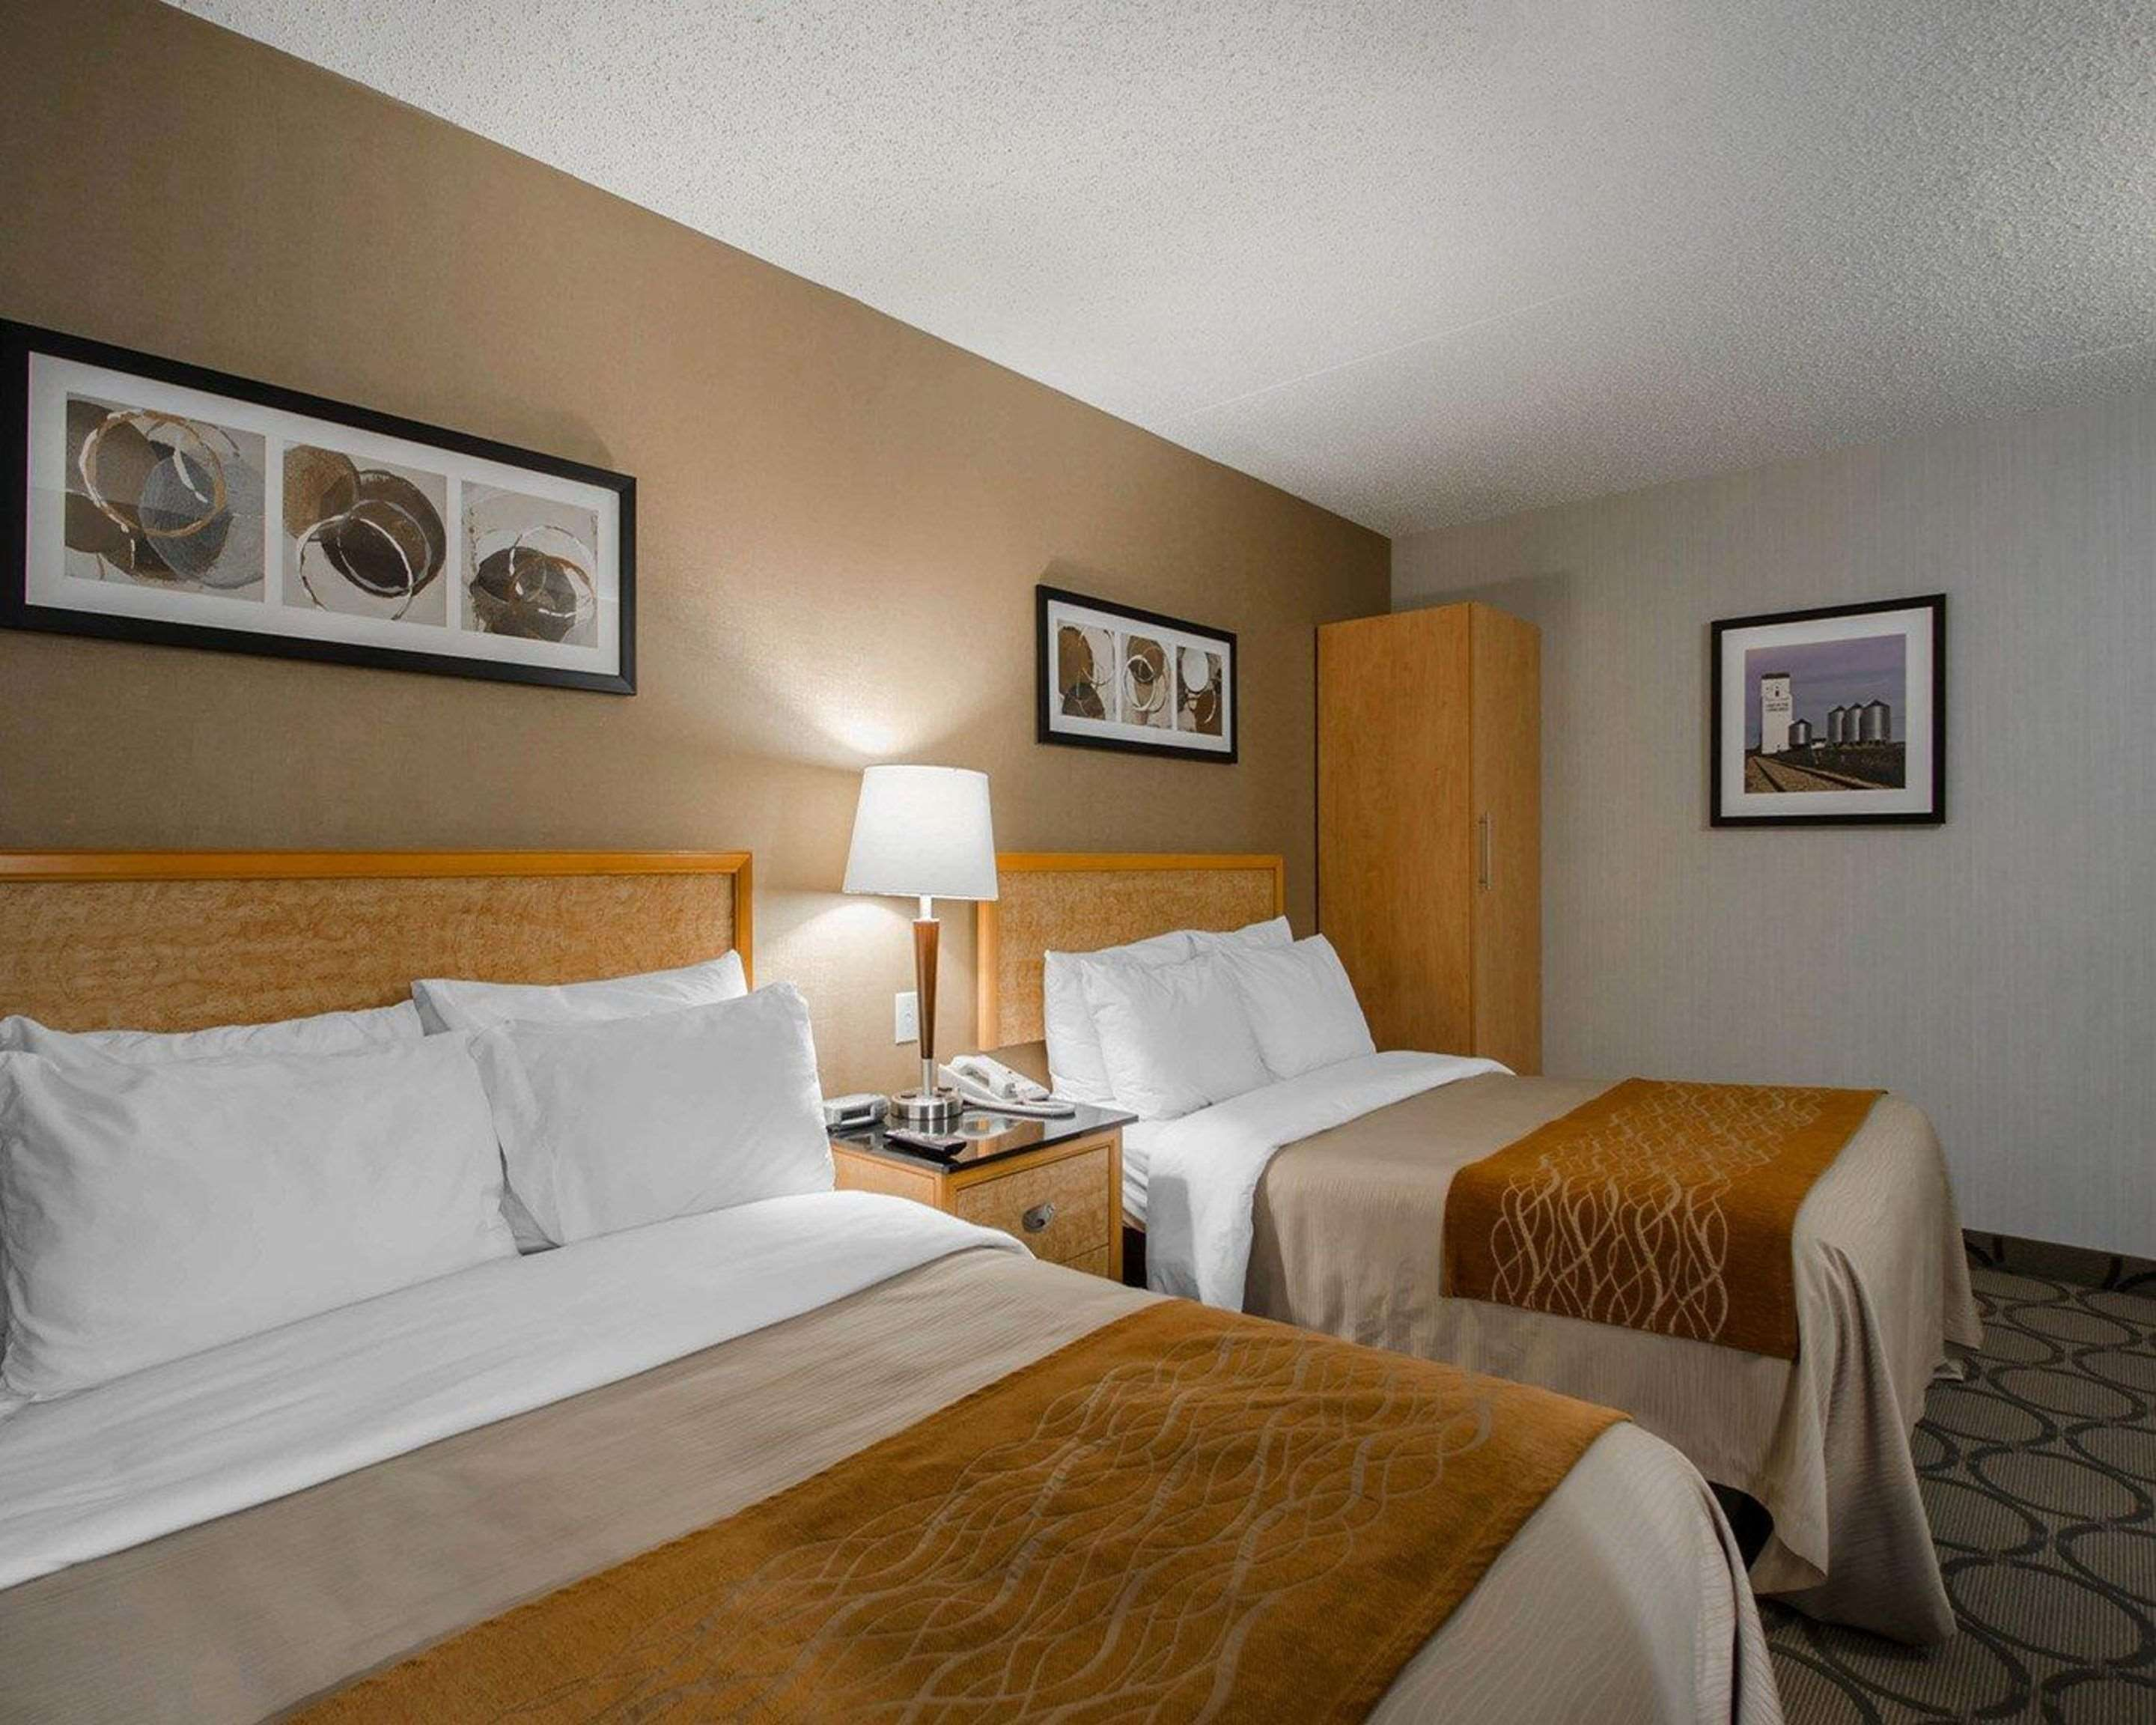 Comfort Inn in Prince Albert: Guest room with double beds